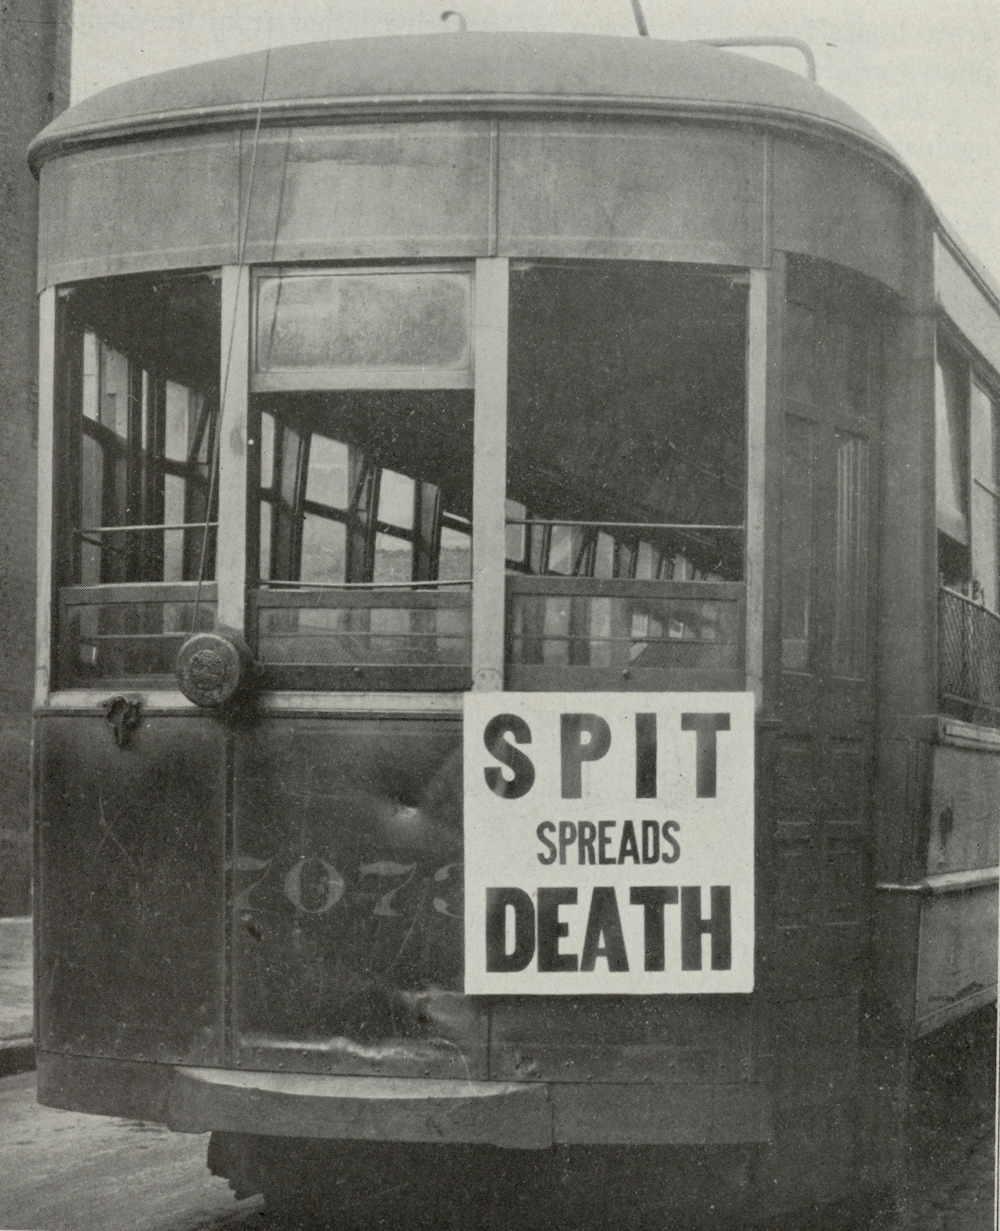 The germ theory of disease was widely accepted by 1918, and centuries of observation informed medical science about the elemental causes of contagion. The advice on a Philadelphia streetcar was pithy and could be taken as prudent even when pandemics were not in play.